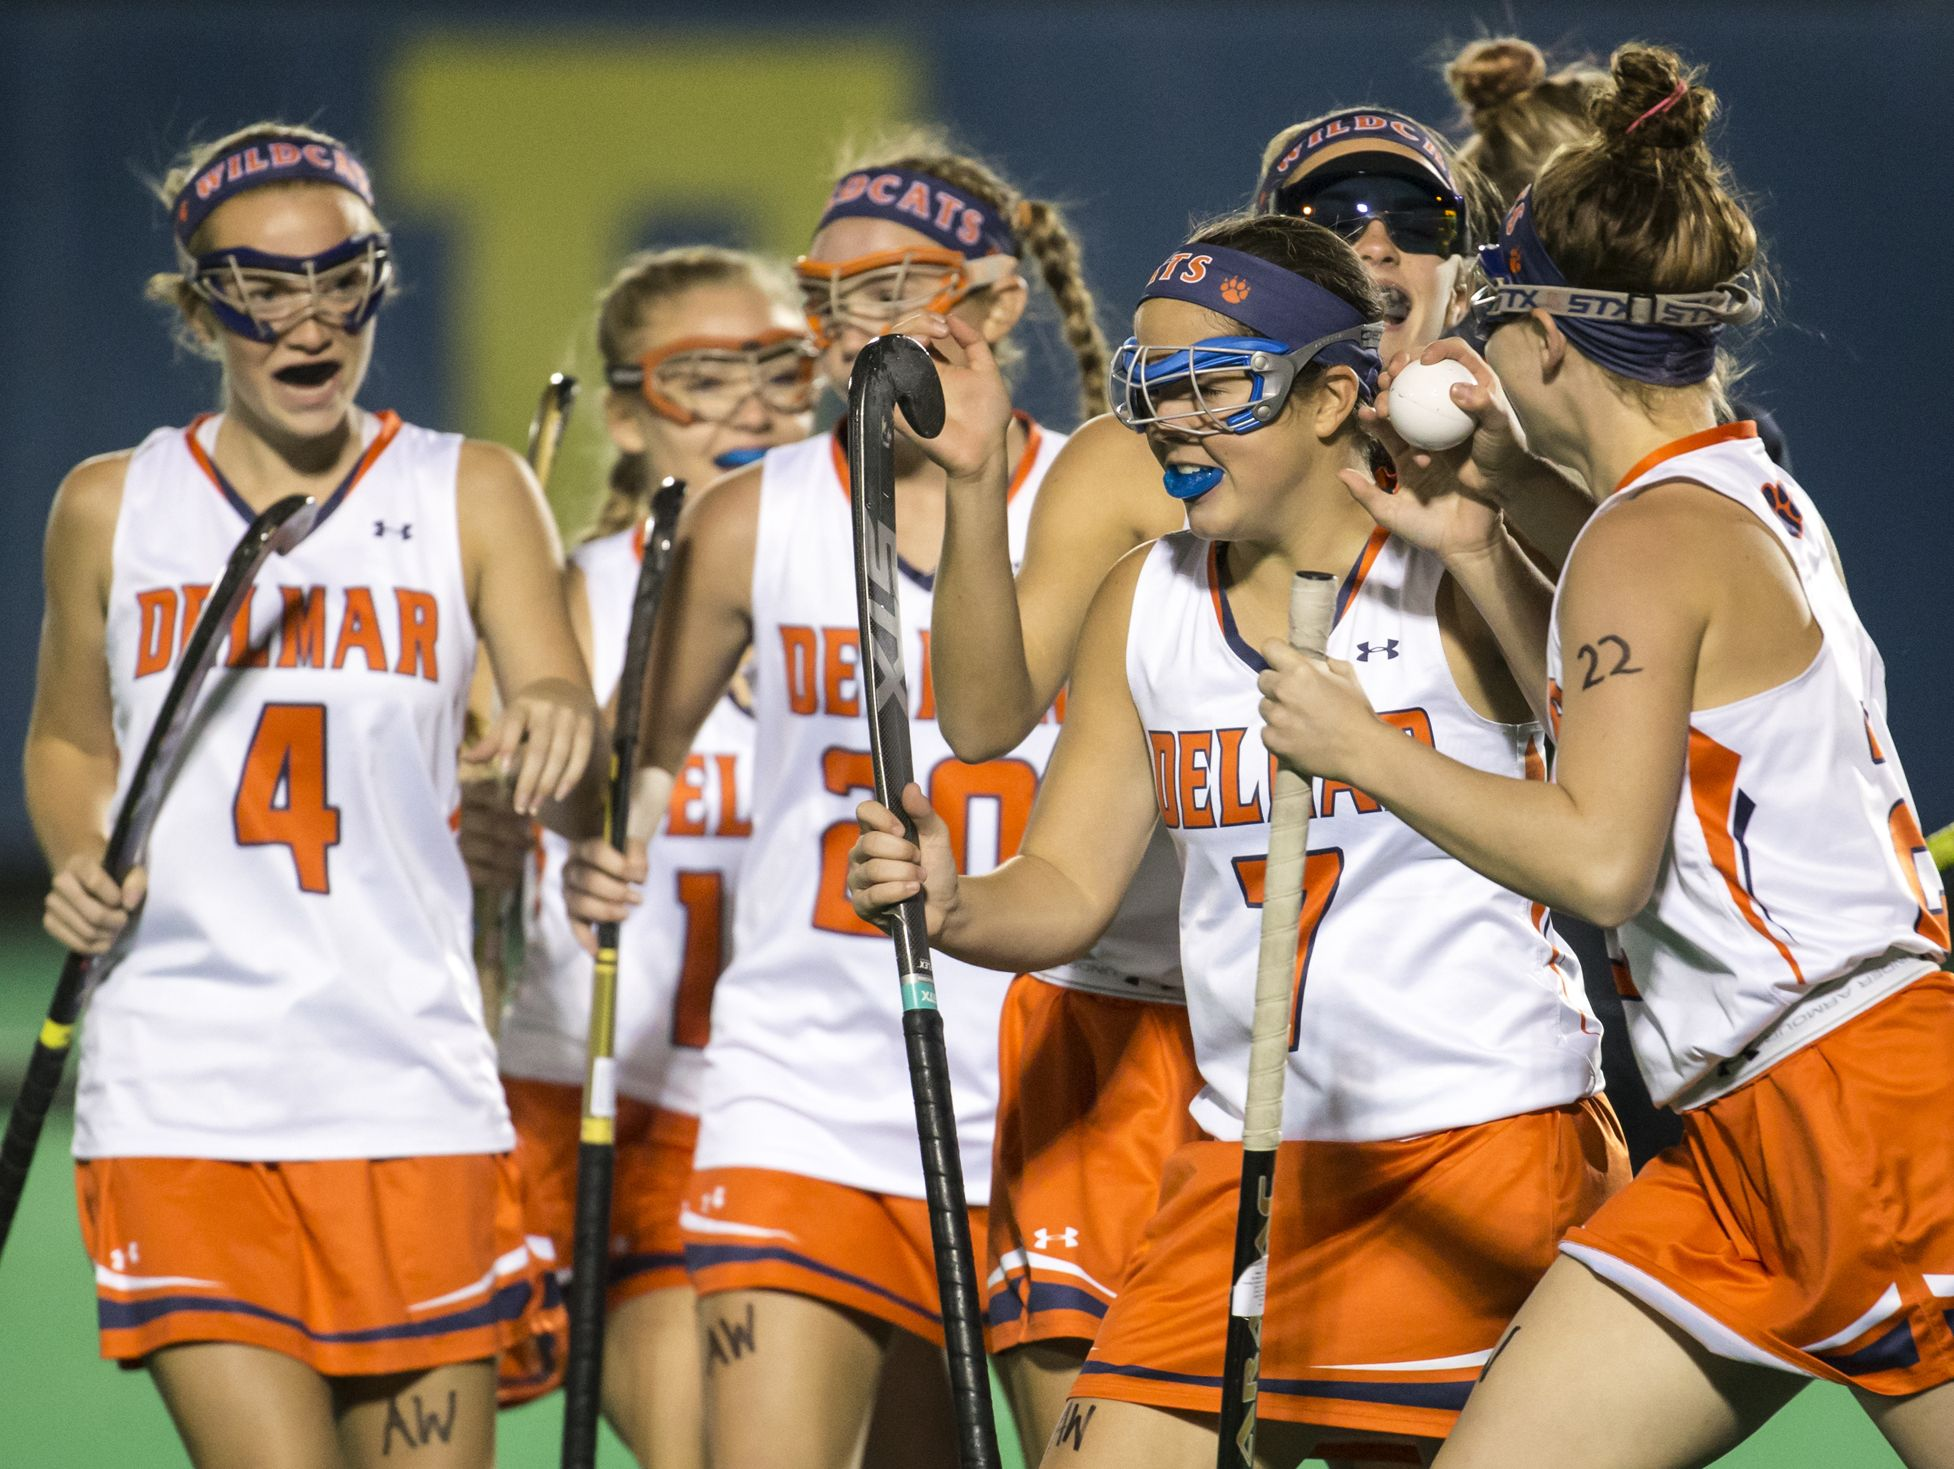 Delmar players celebrate a goal in the first half of Delmar's 2-0 win over Polytech in their DIAA state tournament semi-final game at the University of Delaware in Newark on Tuesday night.